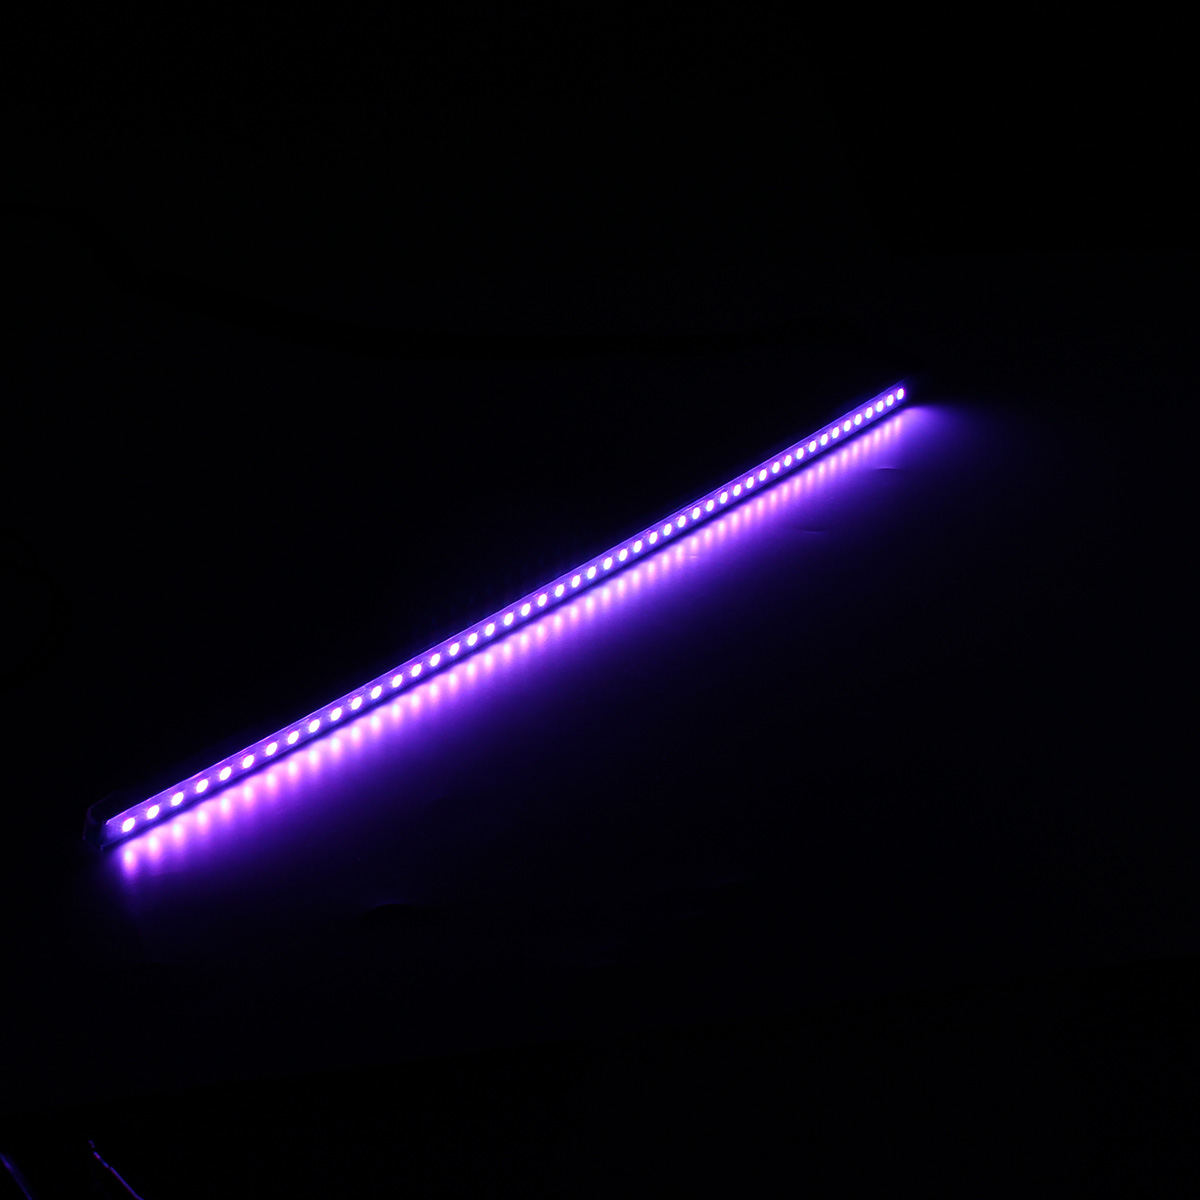 Led Light Strips Rgb 56cm Rgb Led Light Strip Car Under Hood Scanner Knight Rider Strobe Lamp With Remote Controller